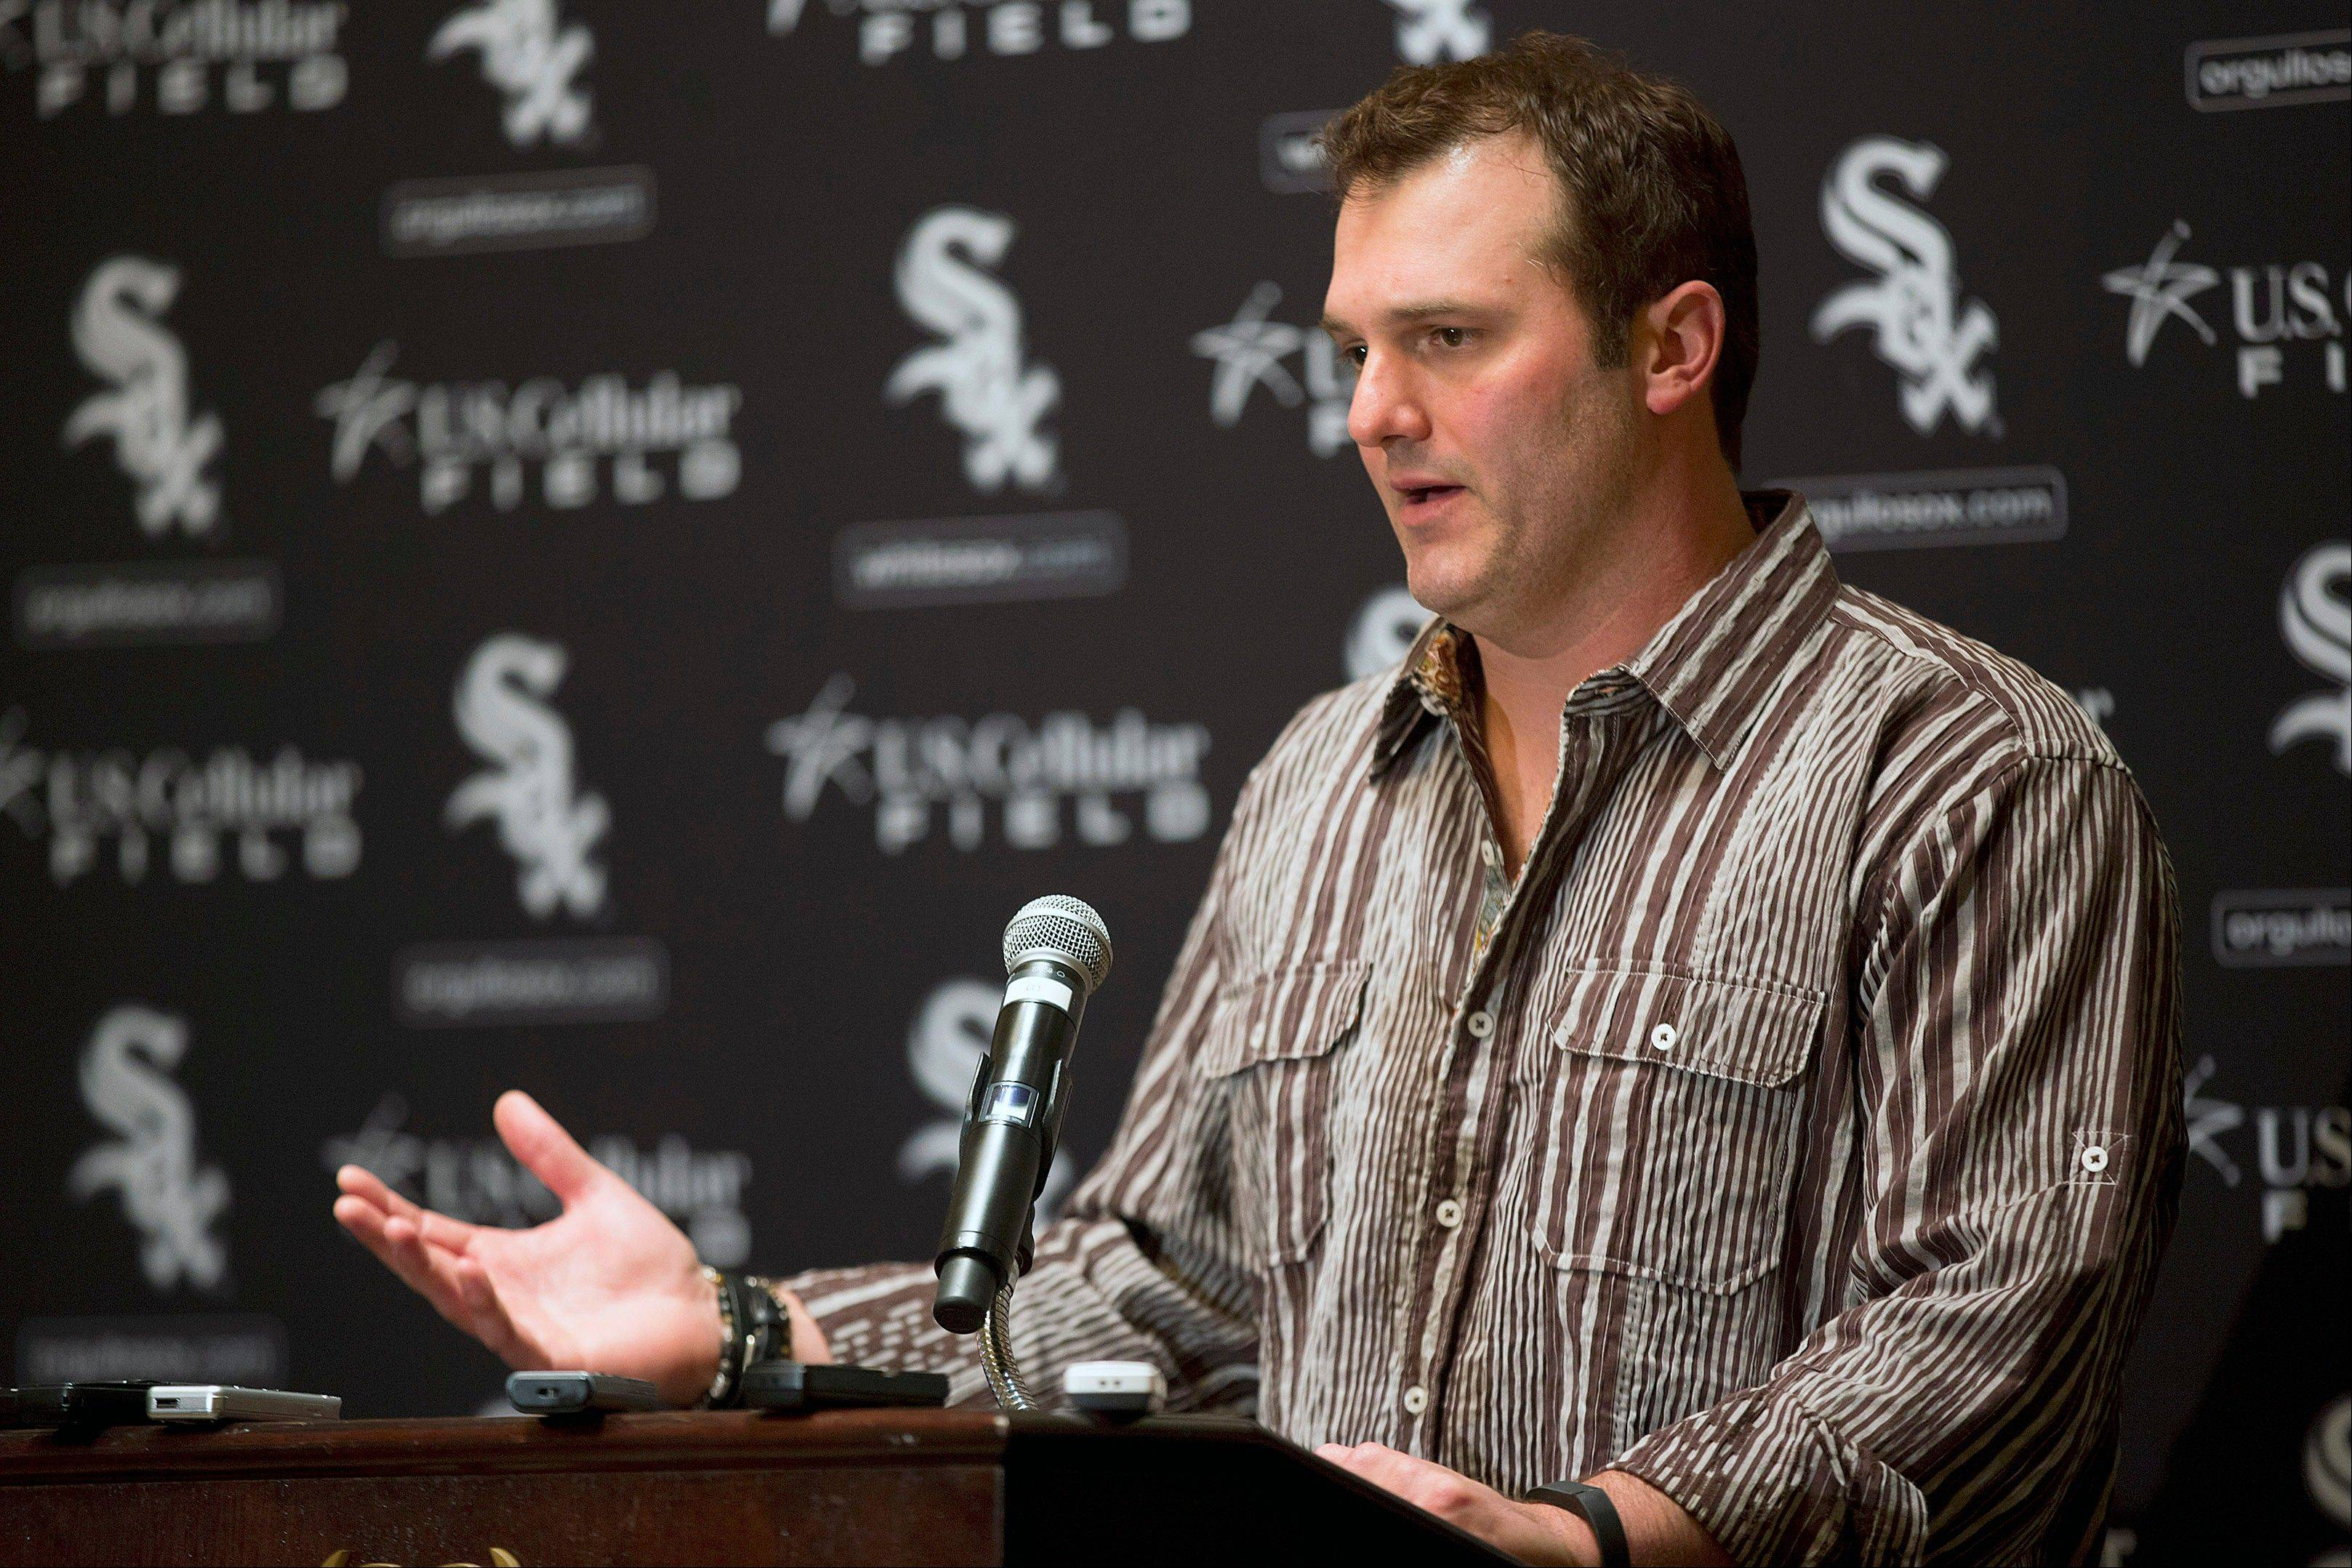 The Chicago White Sox's Paul Konerko speaks during the SoxFest annual fan convention Friday in Chicago.